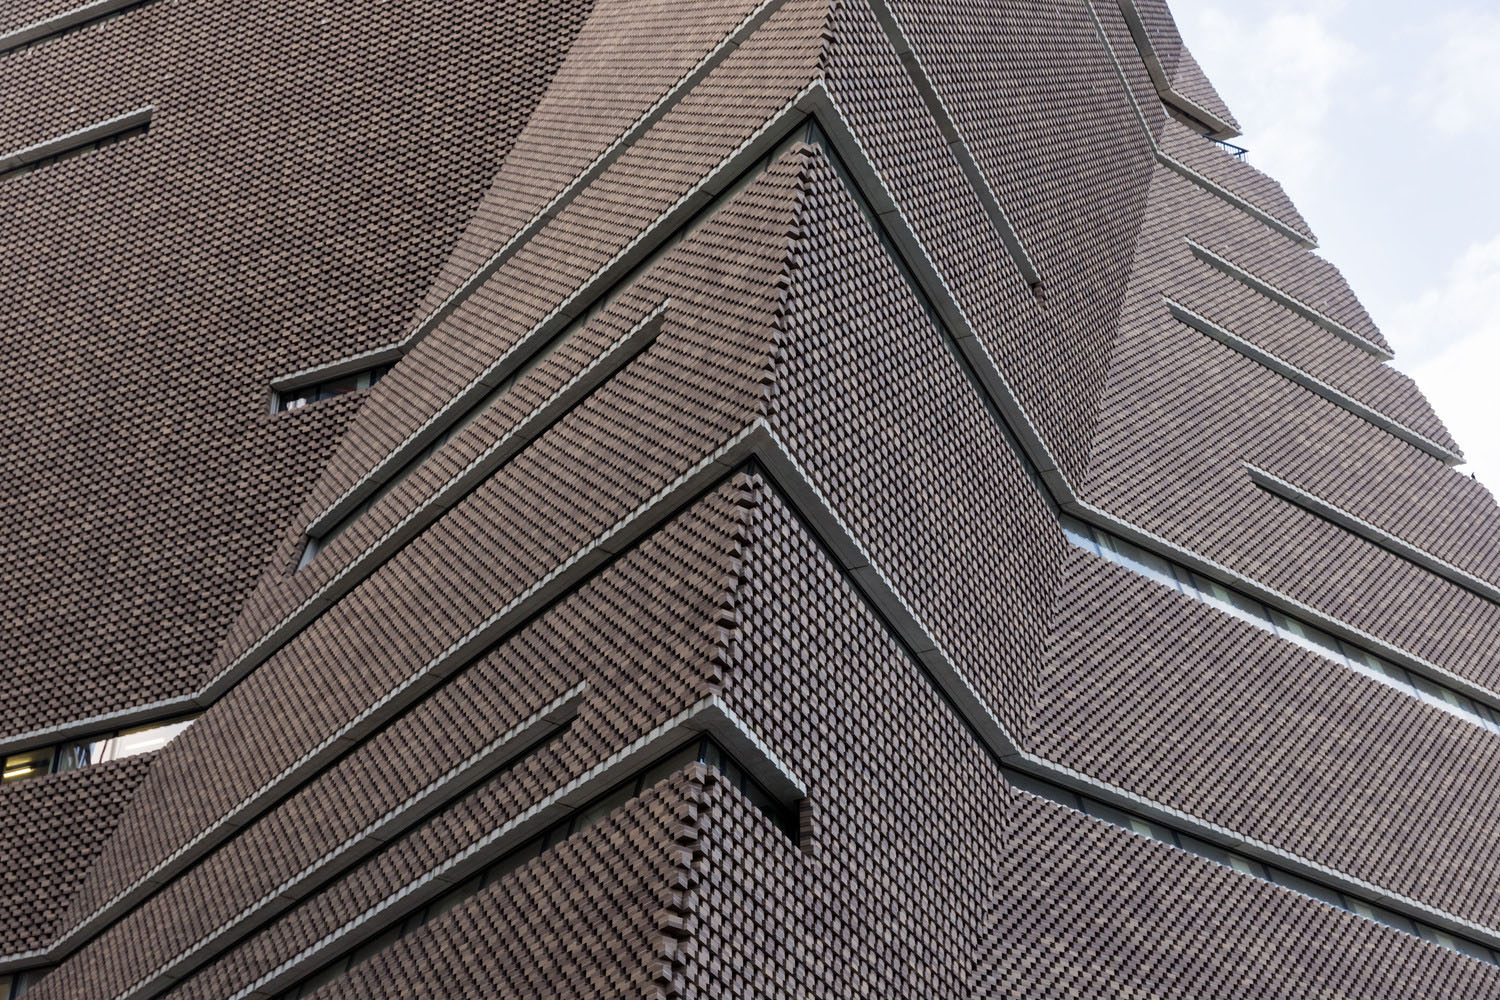 mm_Tate Modern Switch House design by Herzog & de Meuron_02